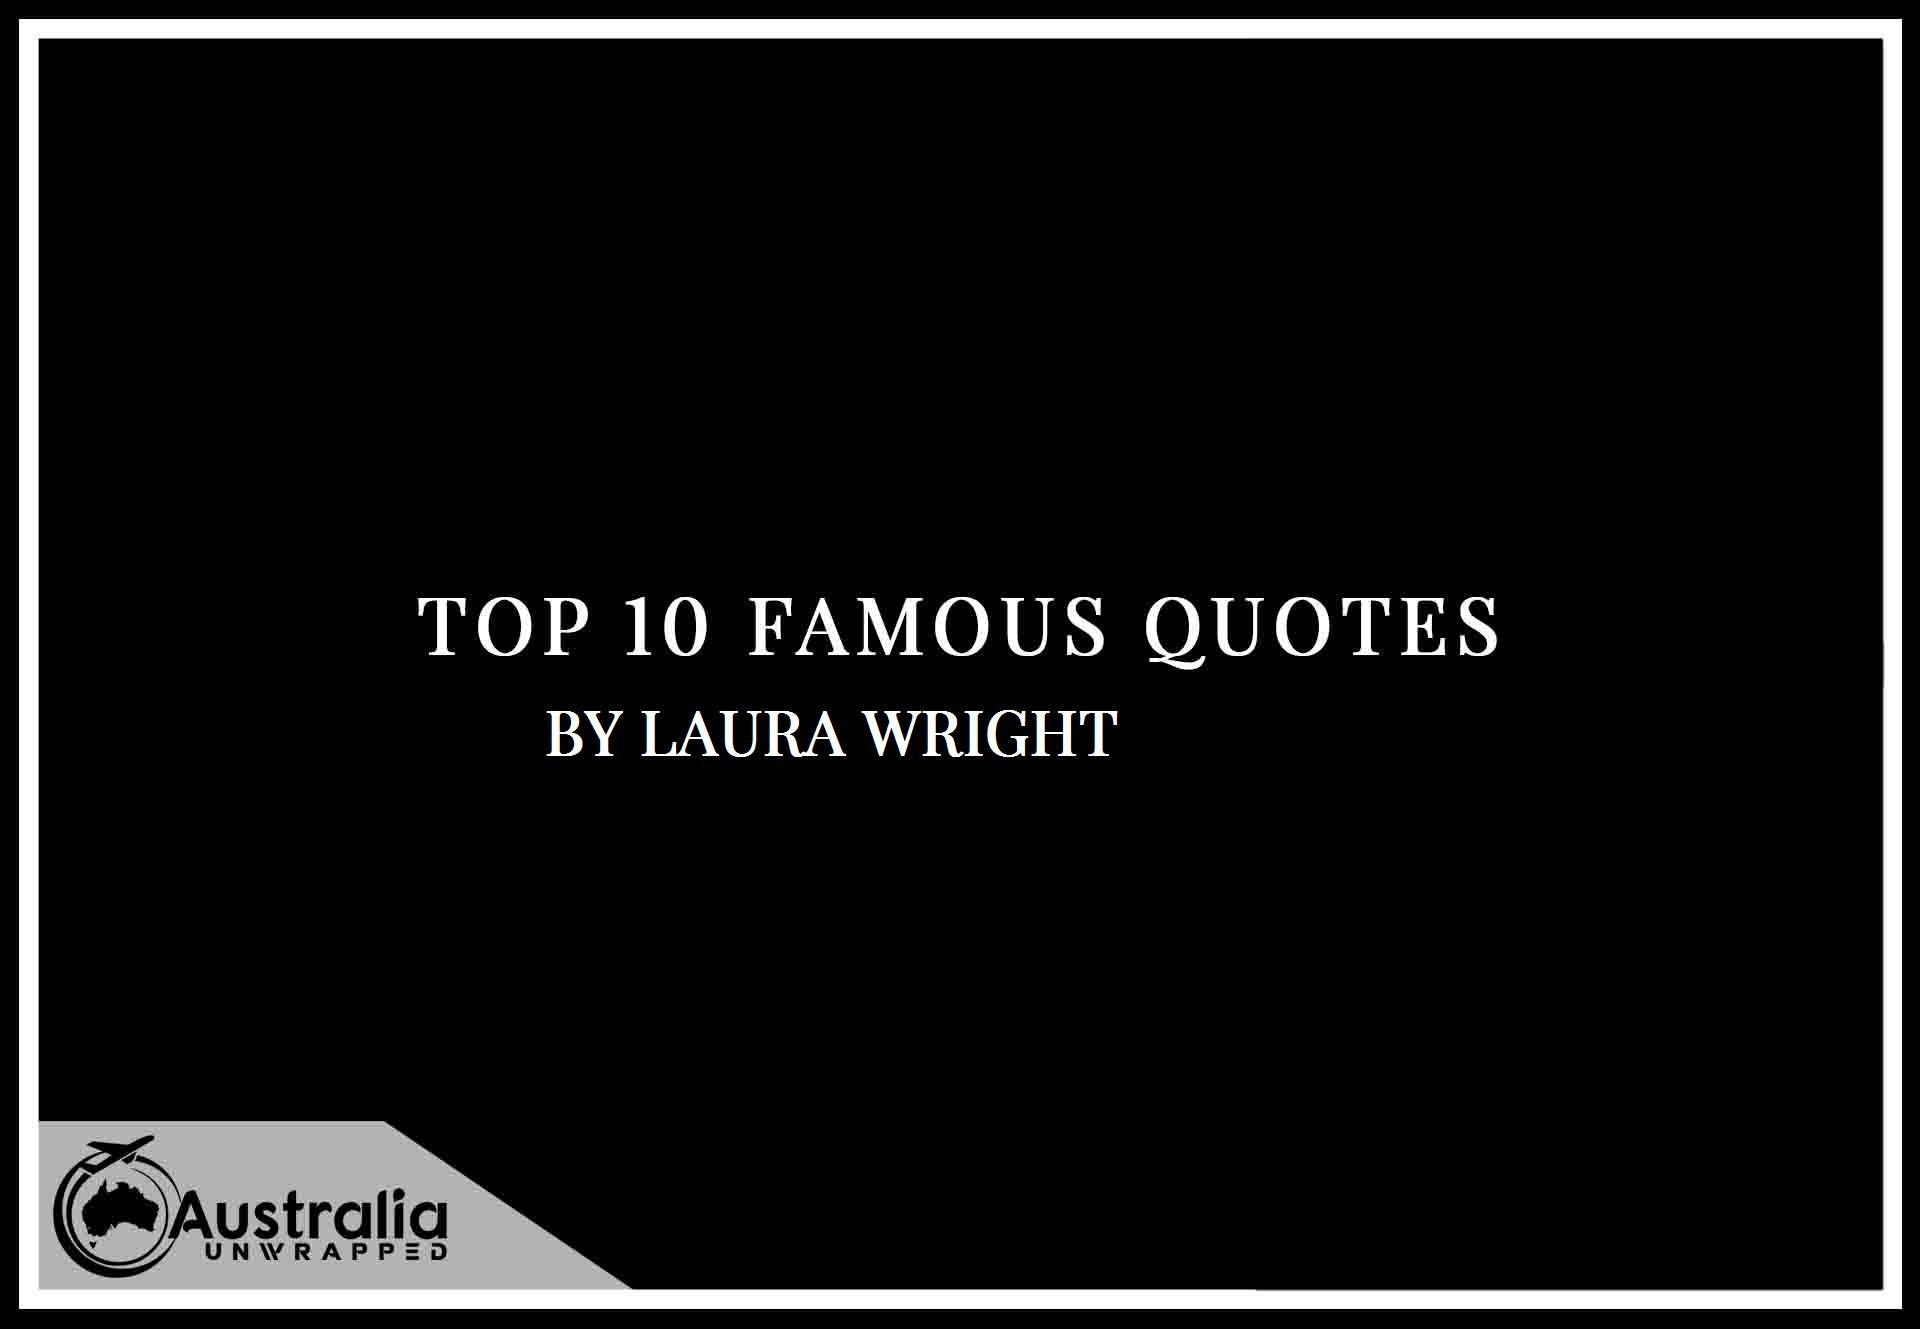 Laura Wright's Top 10 Popular and Famous Quotes